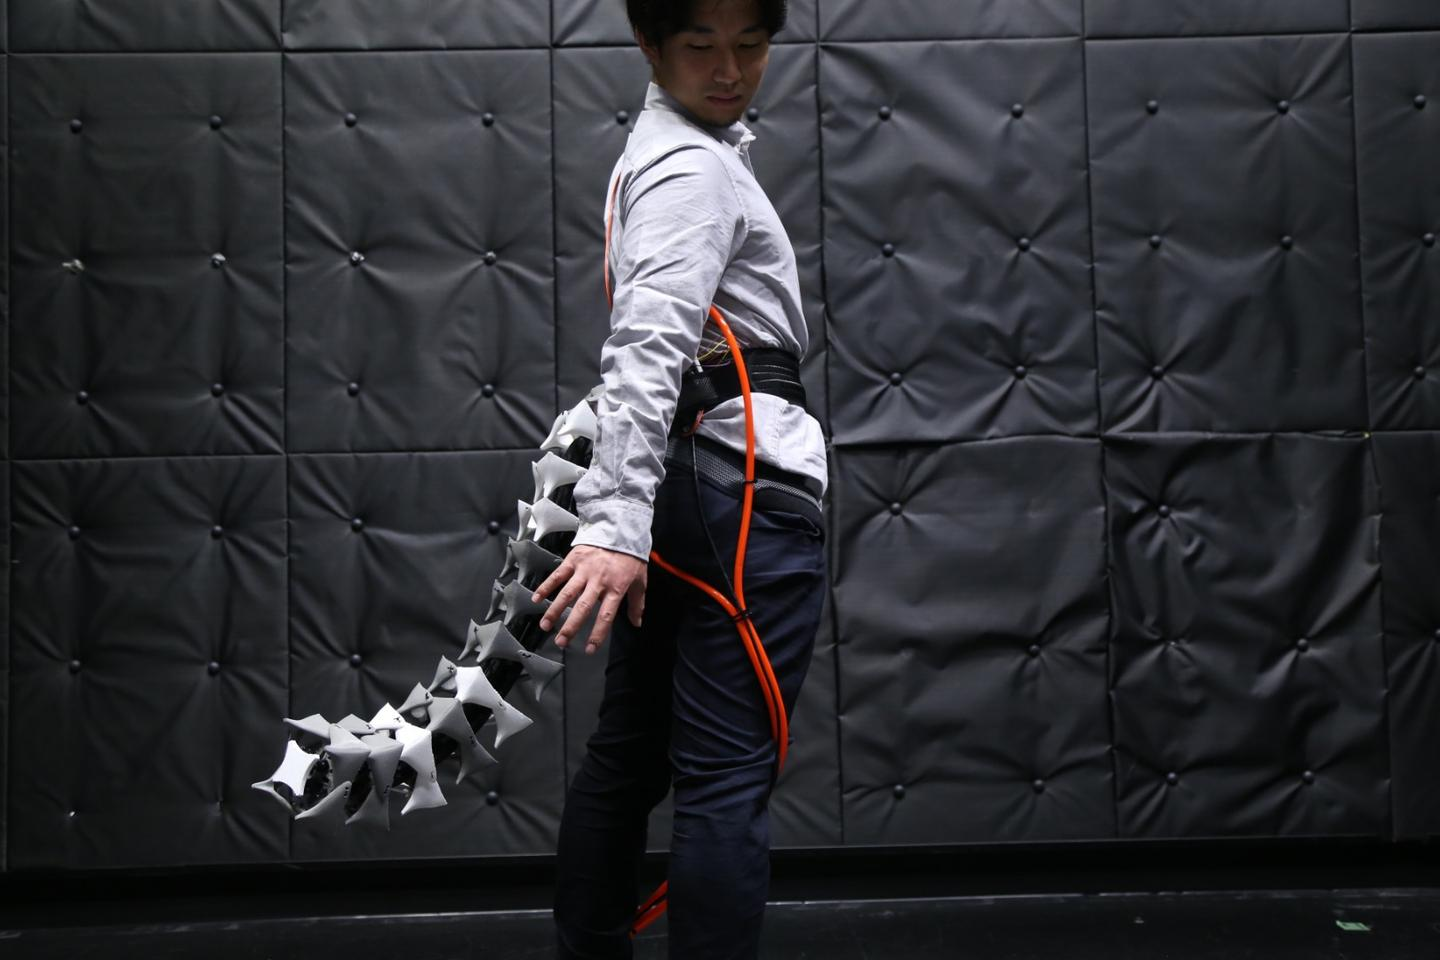 The Arque prosthetic tail could help with mobility, act as a counterweight for heavy lifting tasks, or provide realistic feedback while inside virtual worlds